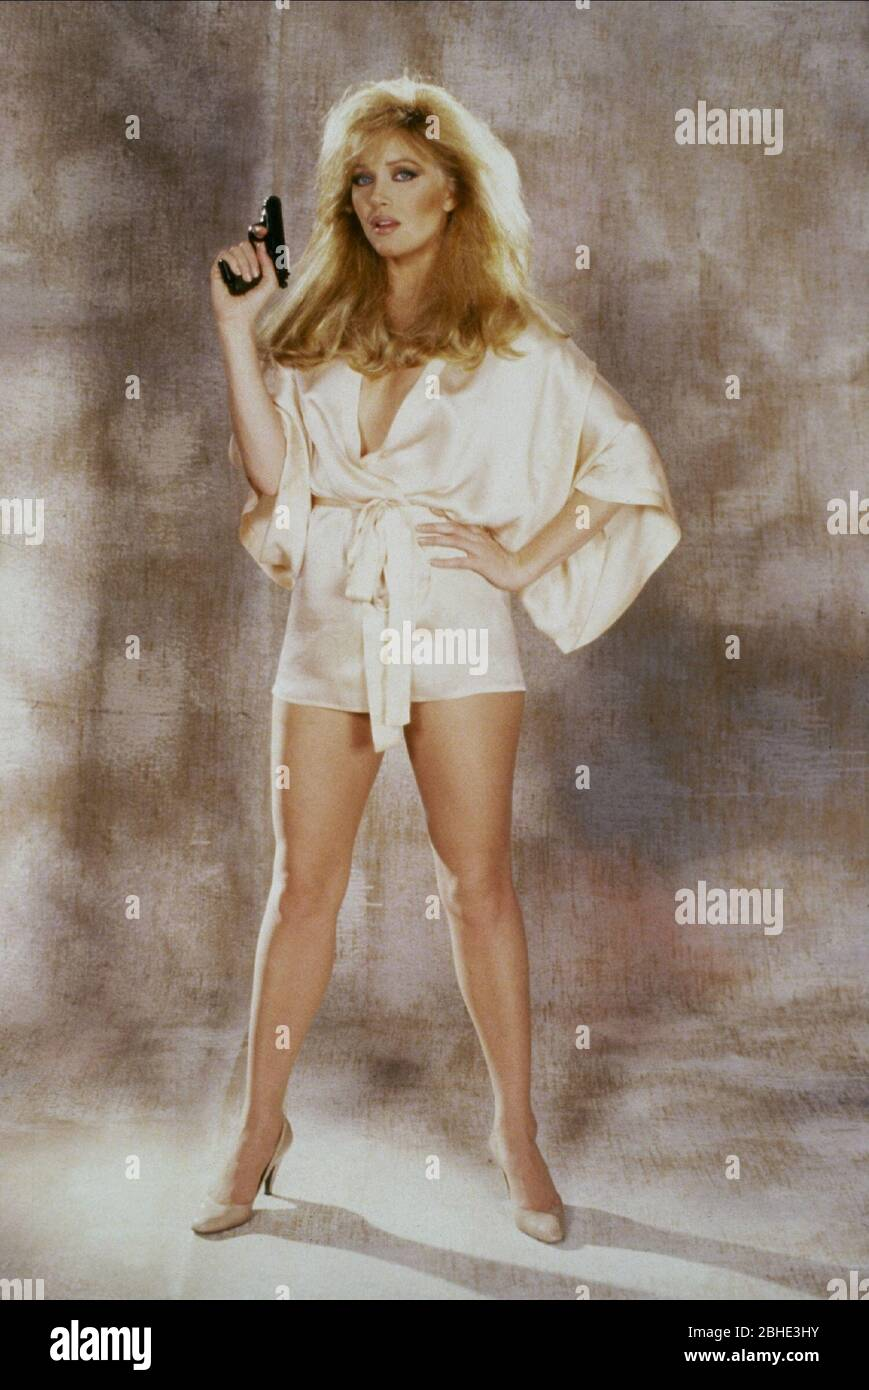 Tanya Roberts High Resolution Stock Photography and Images - Alamy